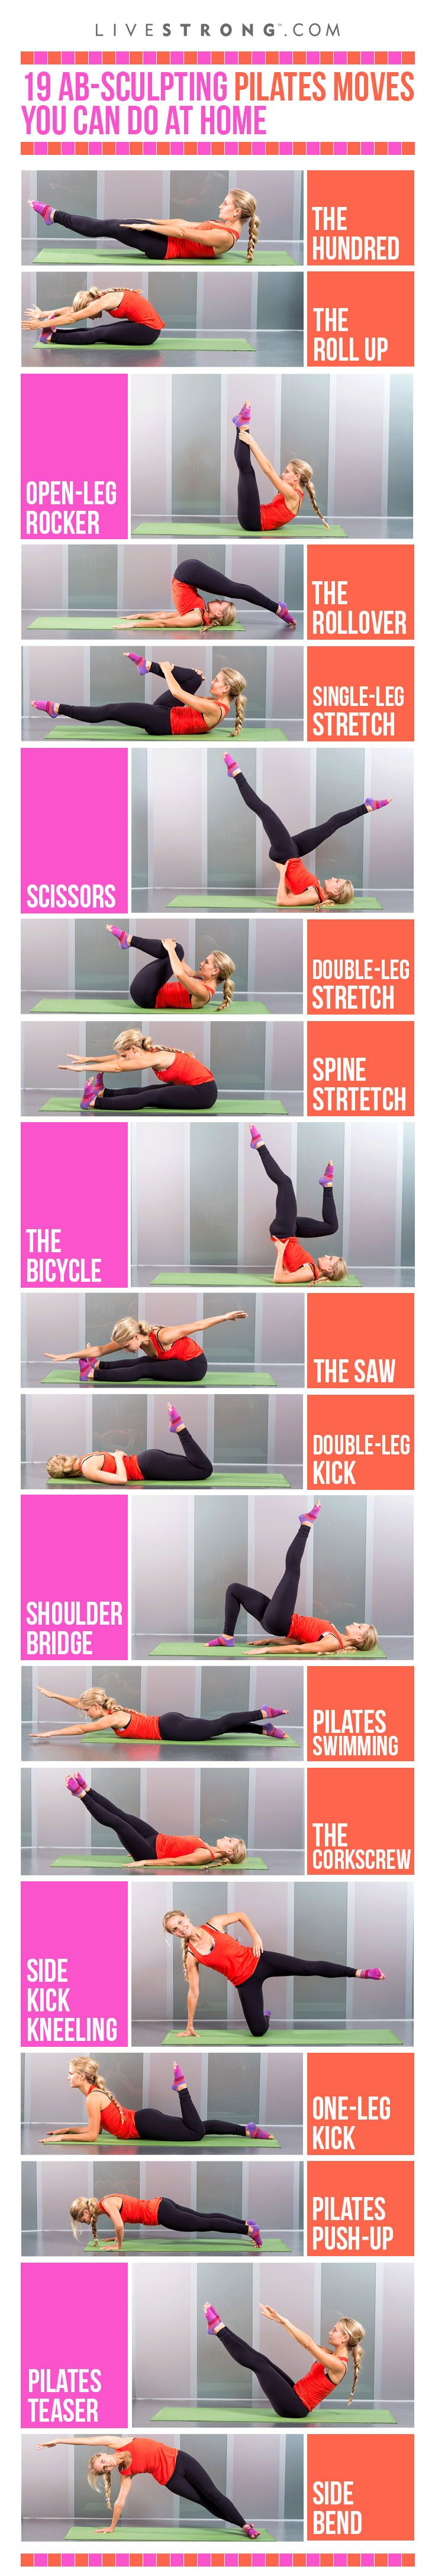 Sculpt your core with these 19 Pilates moves! Click through for GIFs of each move>>>: